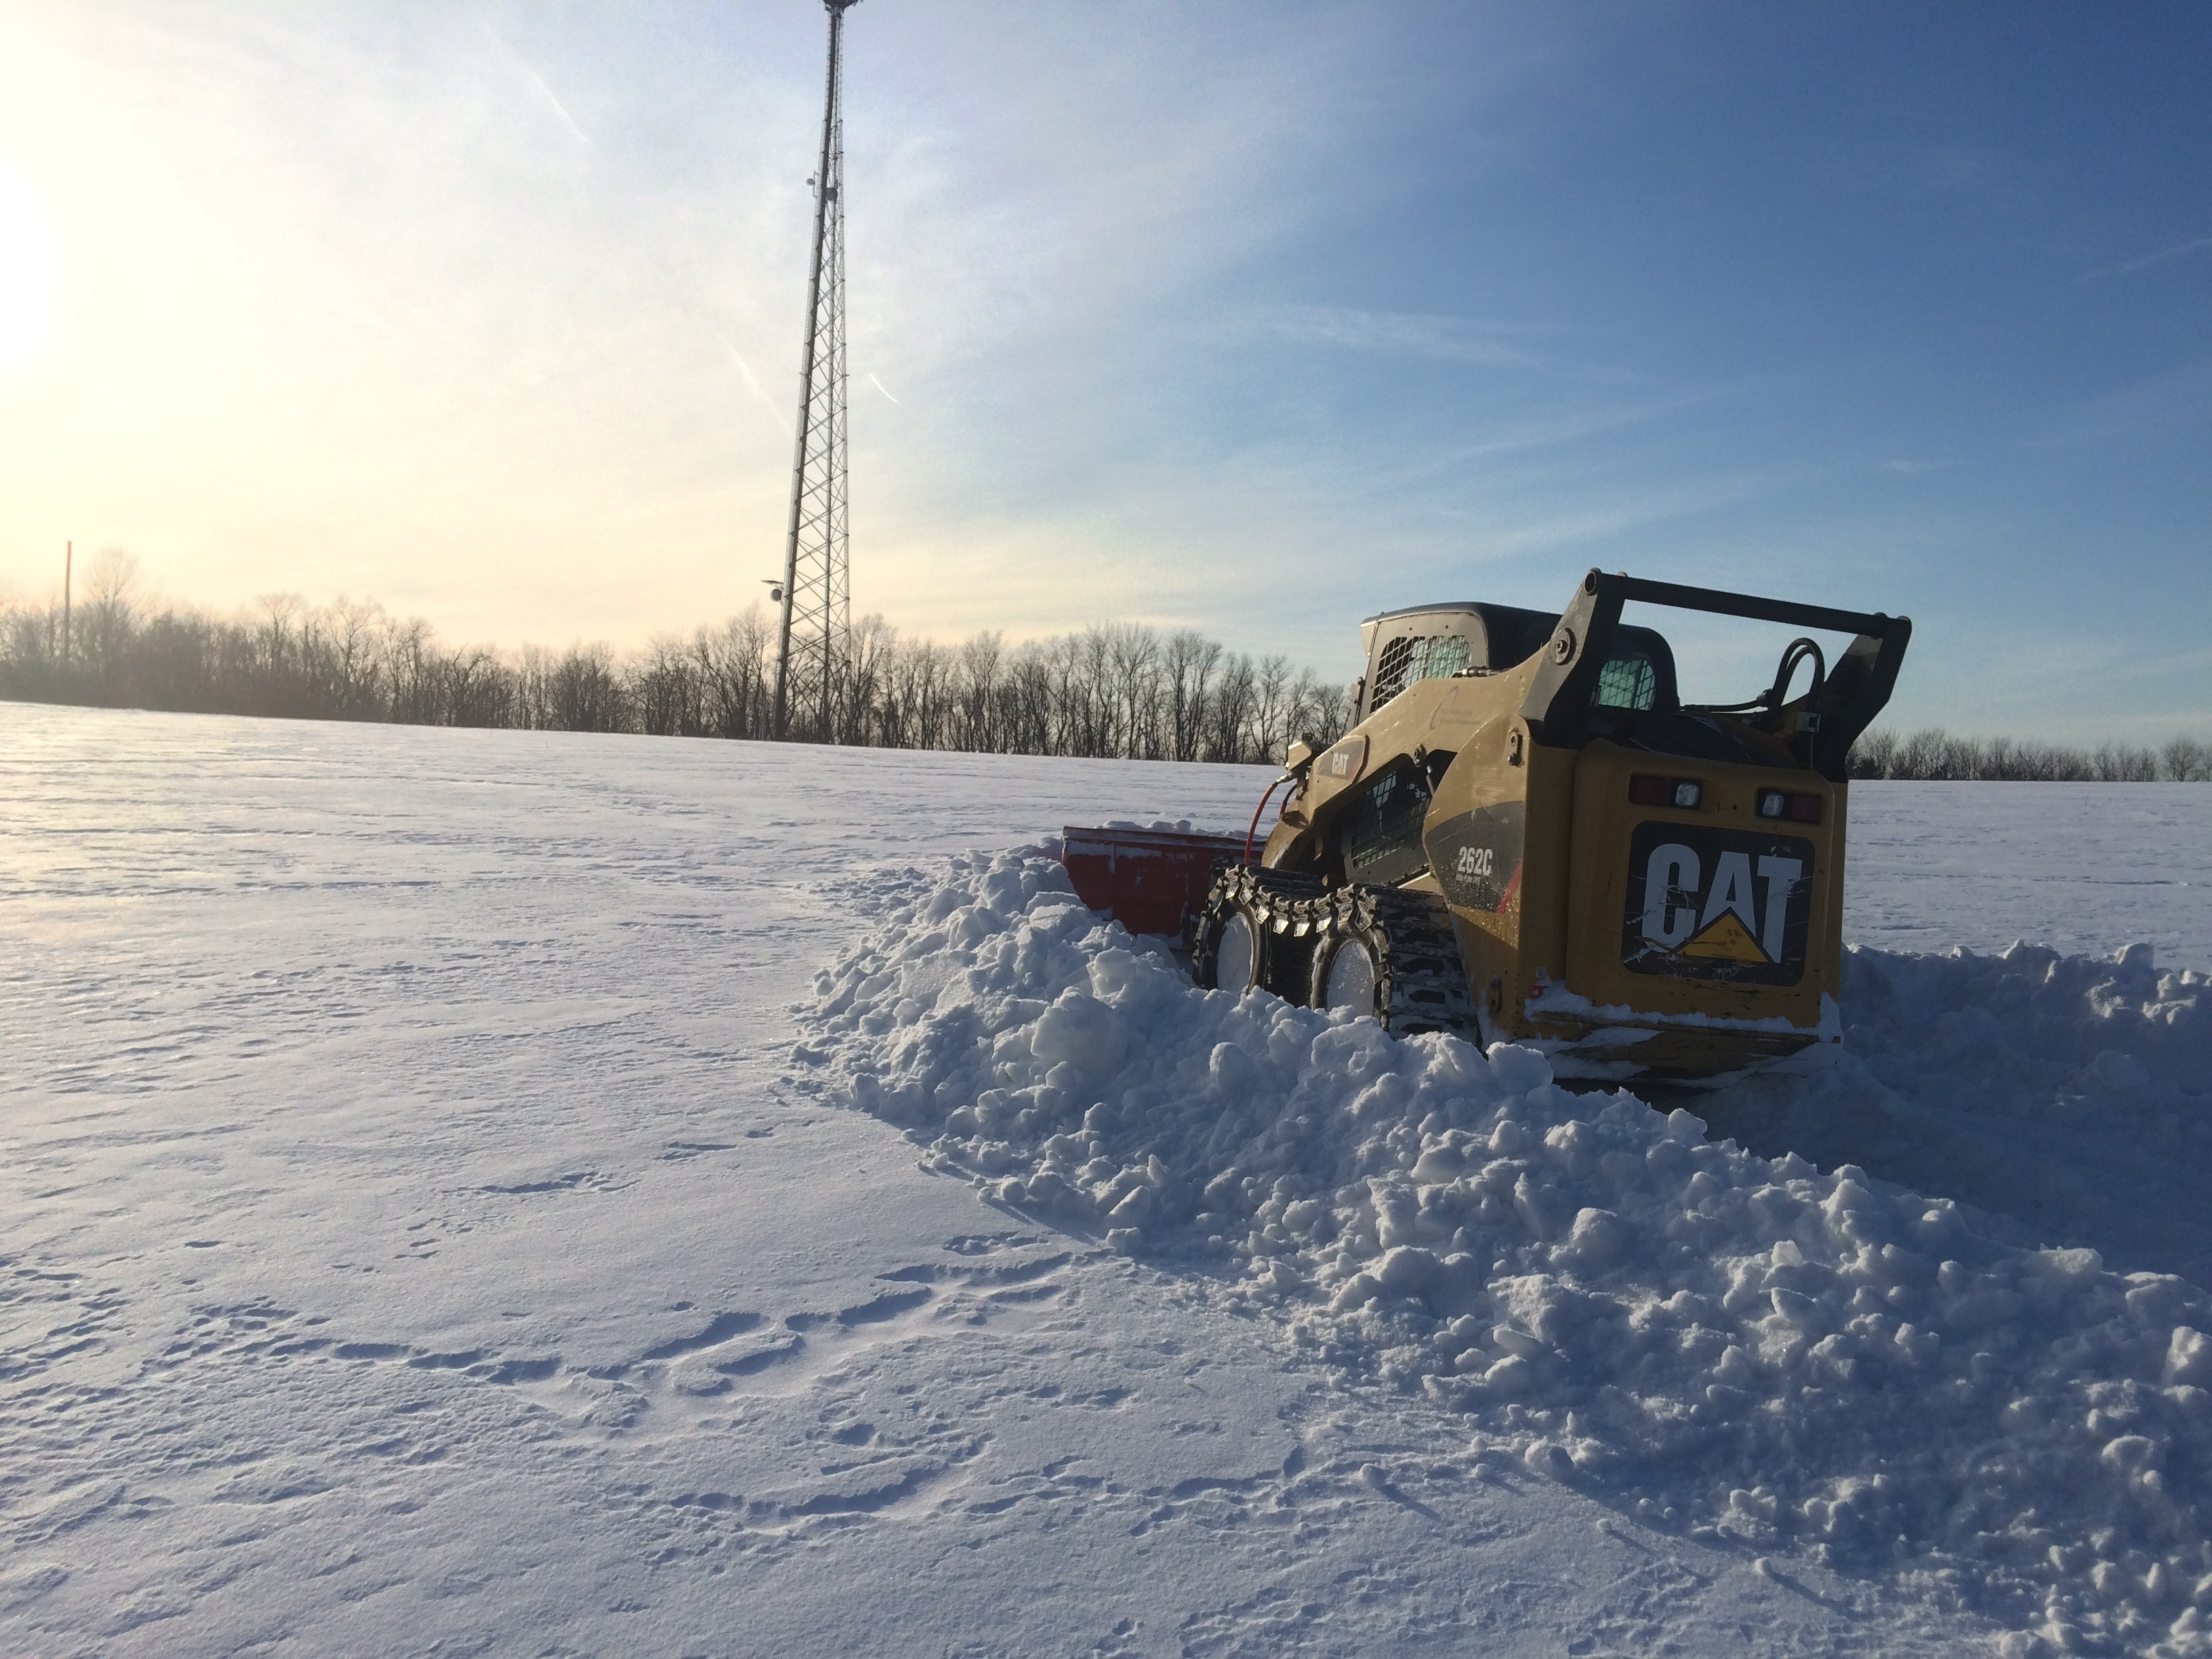 Snow removal for access roads